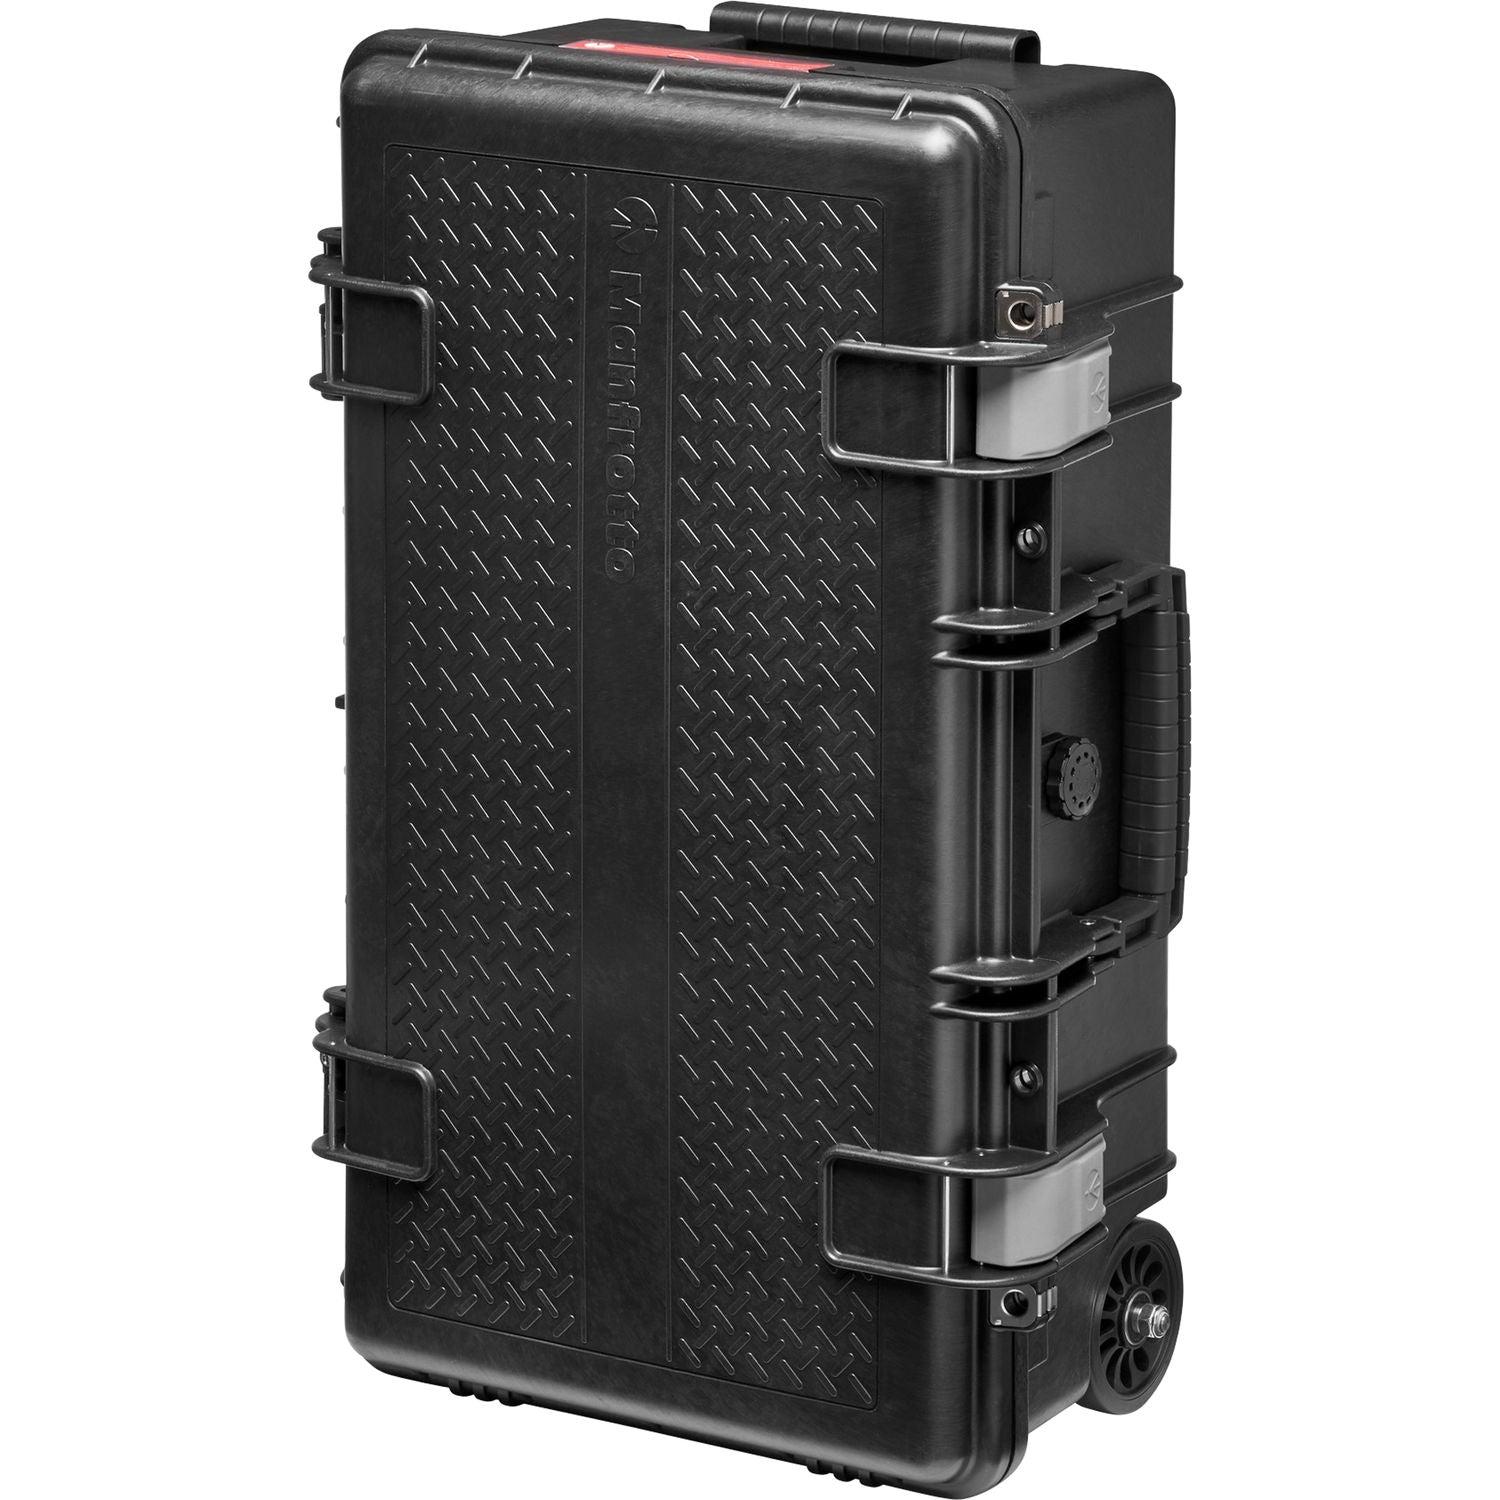 Manfrotto Pro Light Reloader Tough-55 Low Lid Carry-On Camera Rollerbag (Black)